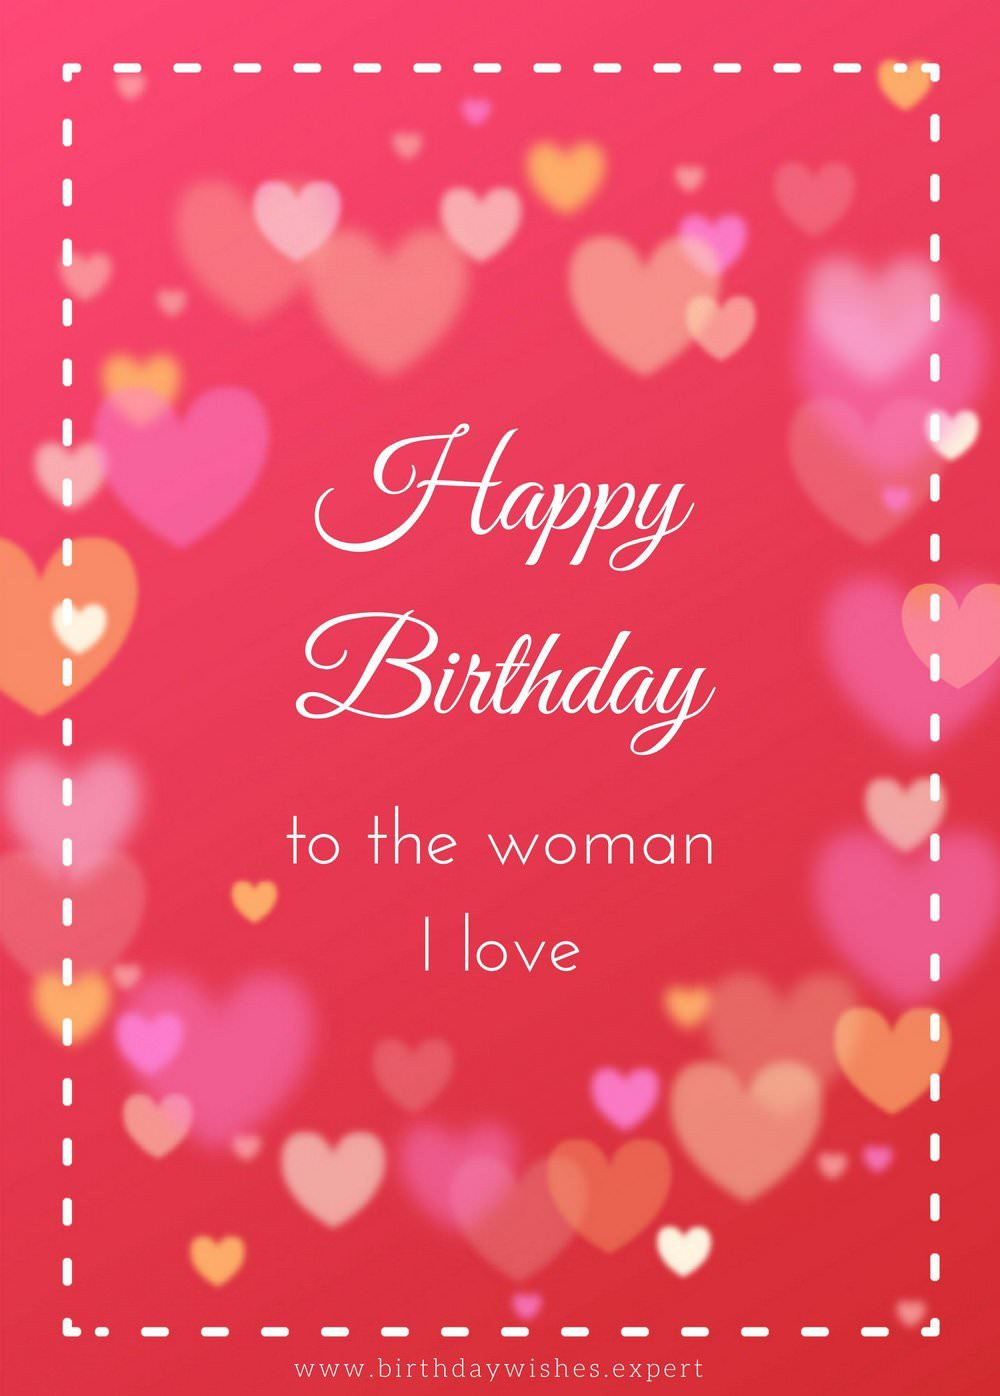 Best ideas about Birthday Wishes To Wife . Save or Pin 120 Birthday Wishes your Wife Would Appreciate Now.